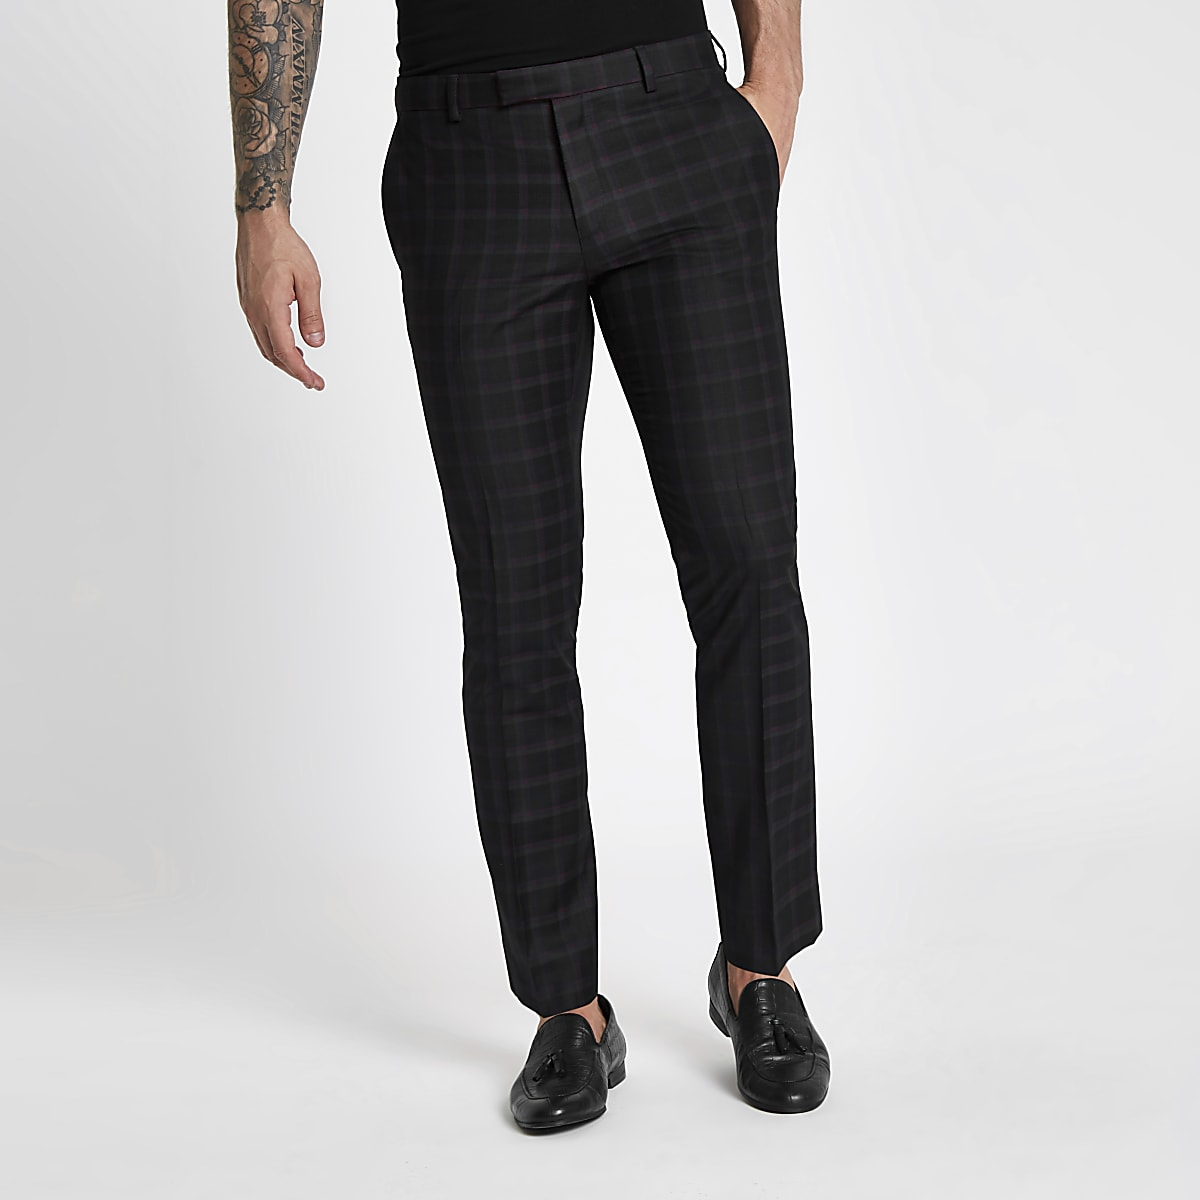 f1231c583 Black and burgundy check skinny suit trousers - Suit Trousers - Suits - men